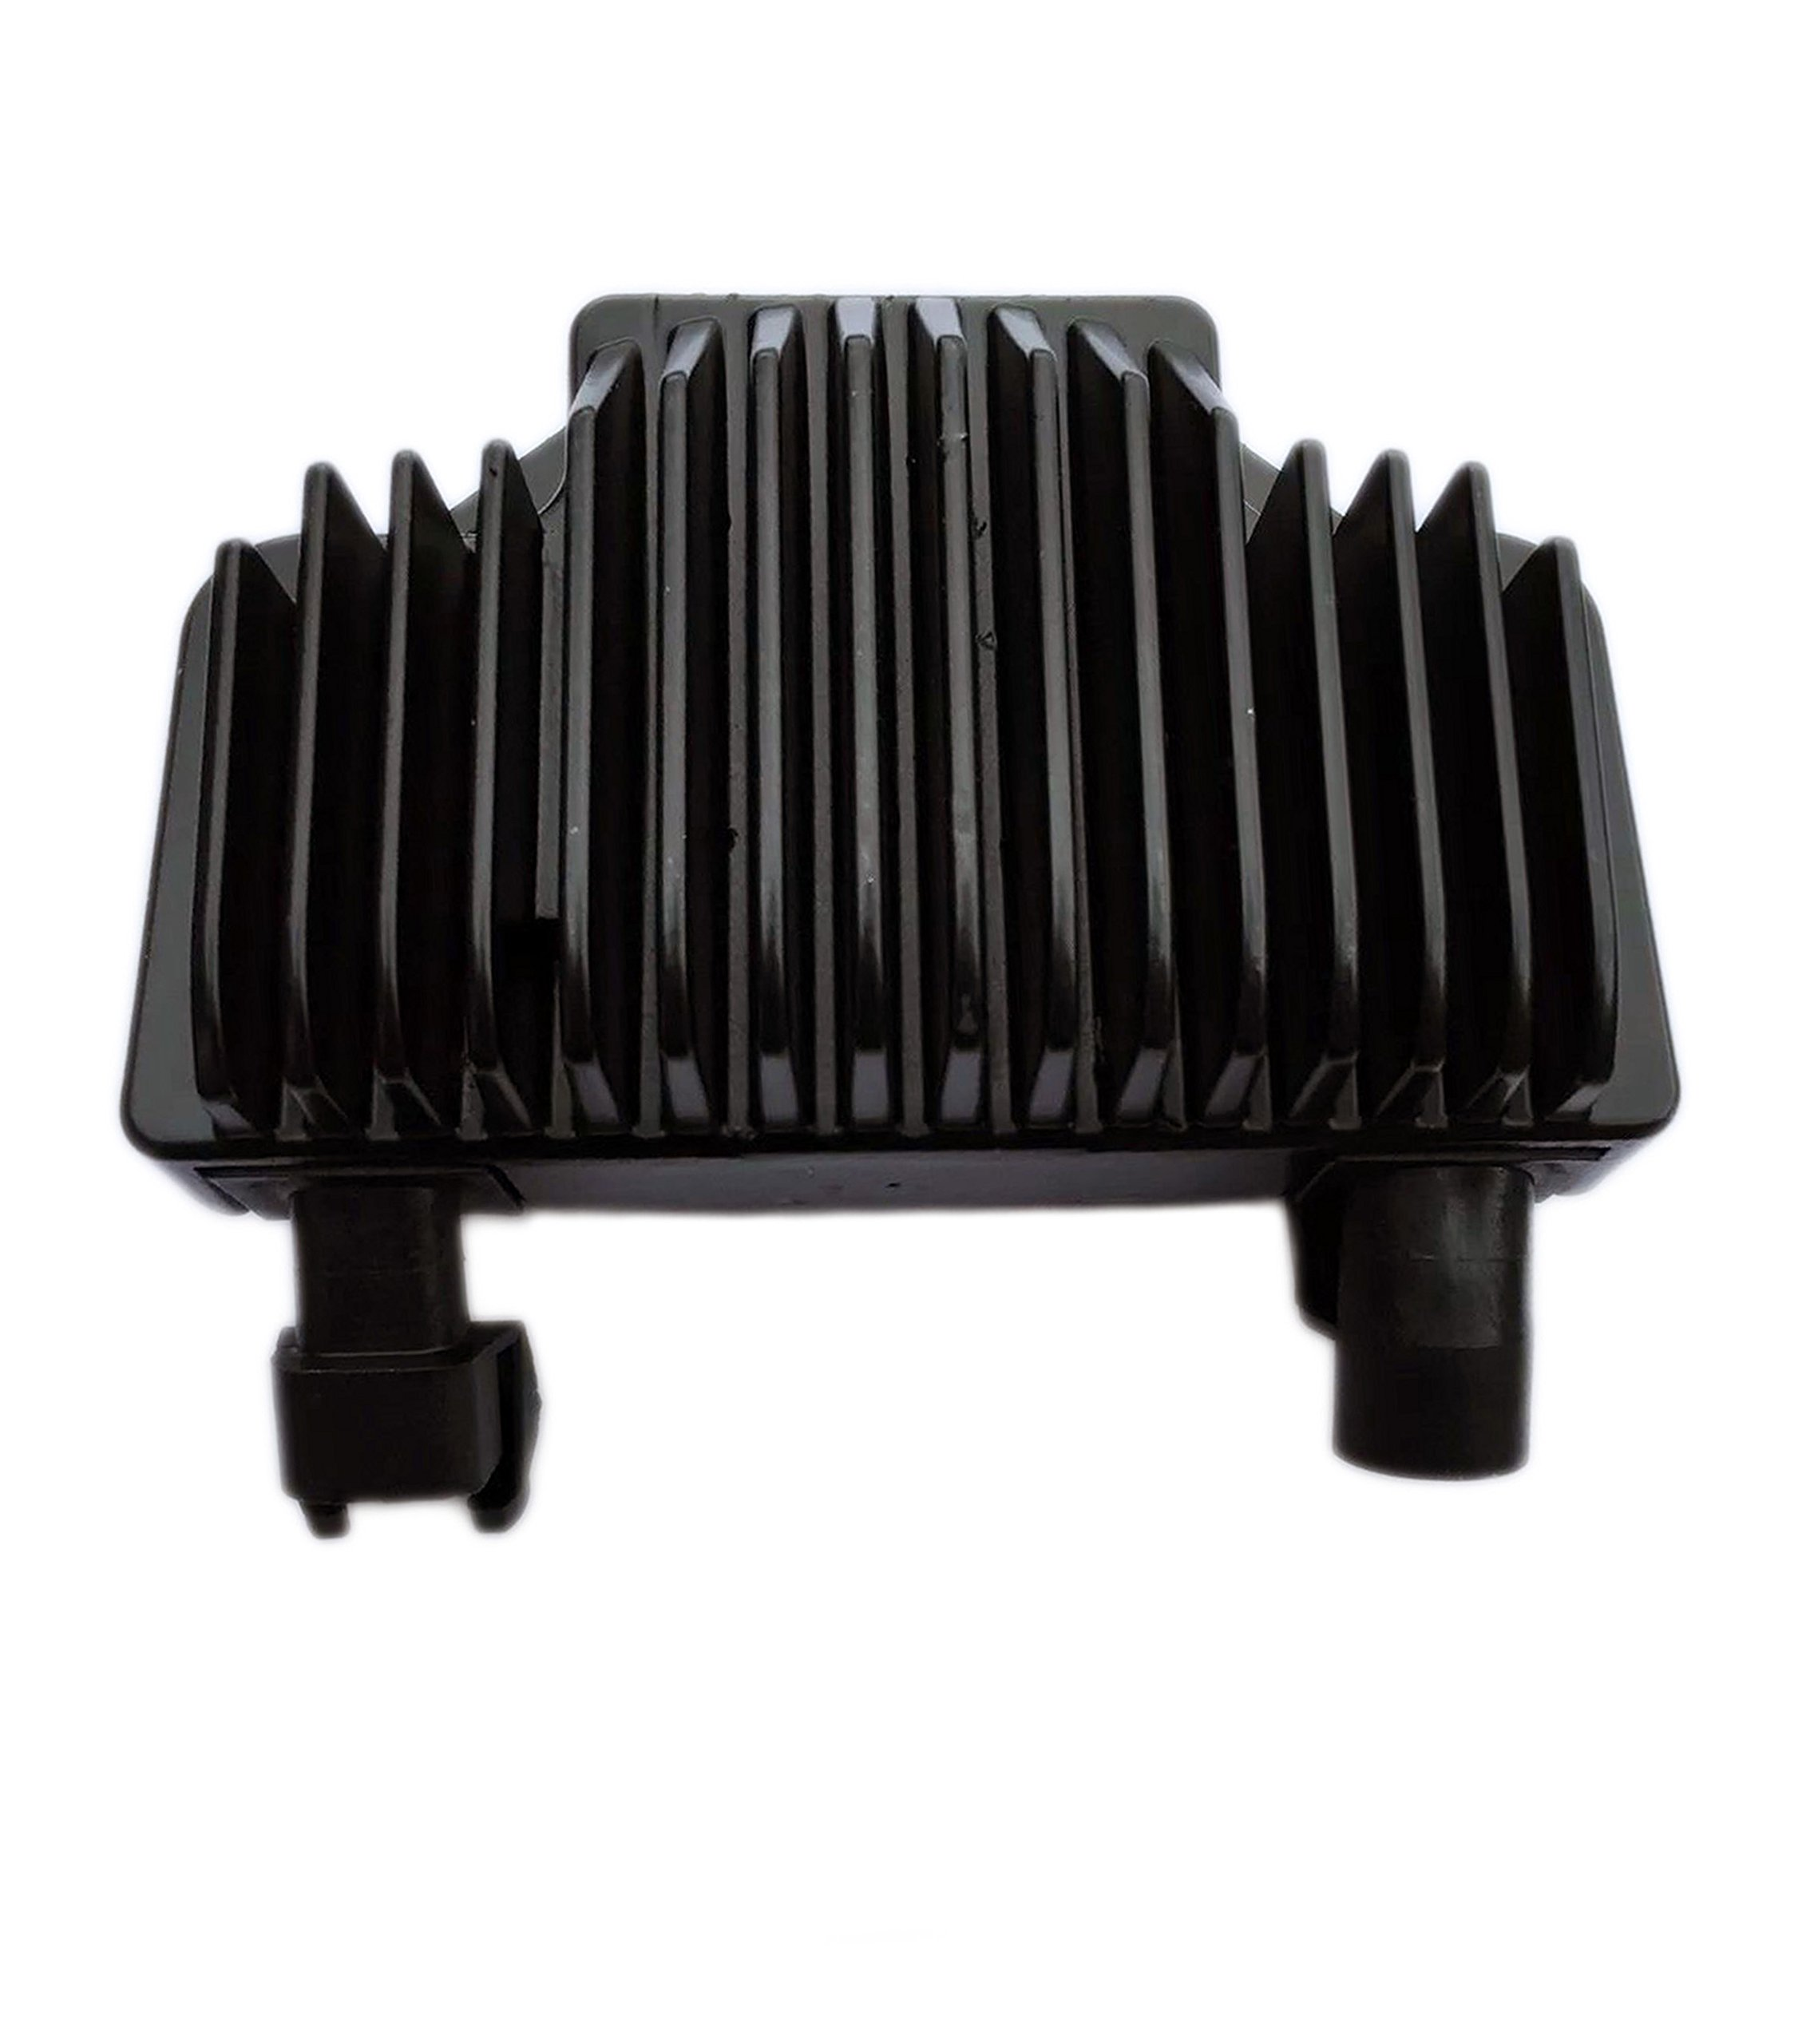 New Voltage Regulator Rectifier For Harley Davidson Dyna Replaces 74631-08A 74631-08, H3108 Black by EMS Global Direct